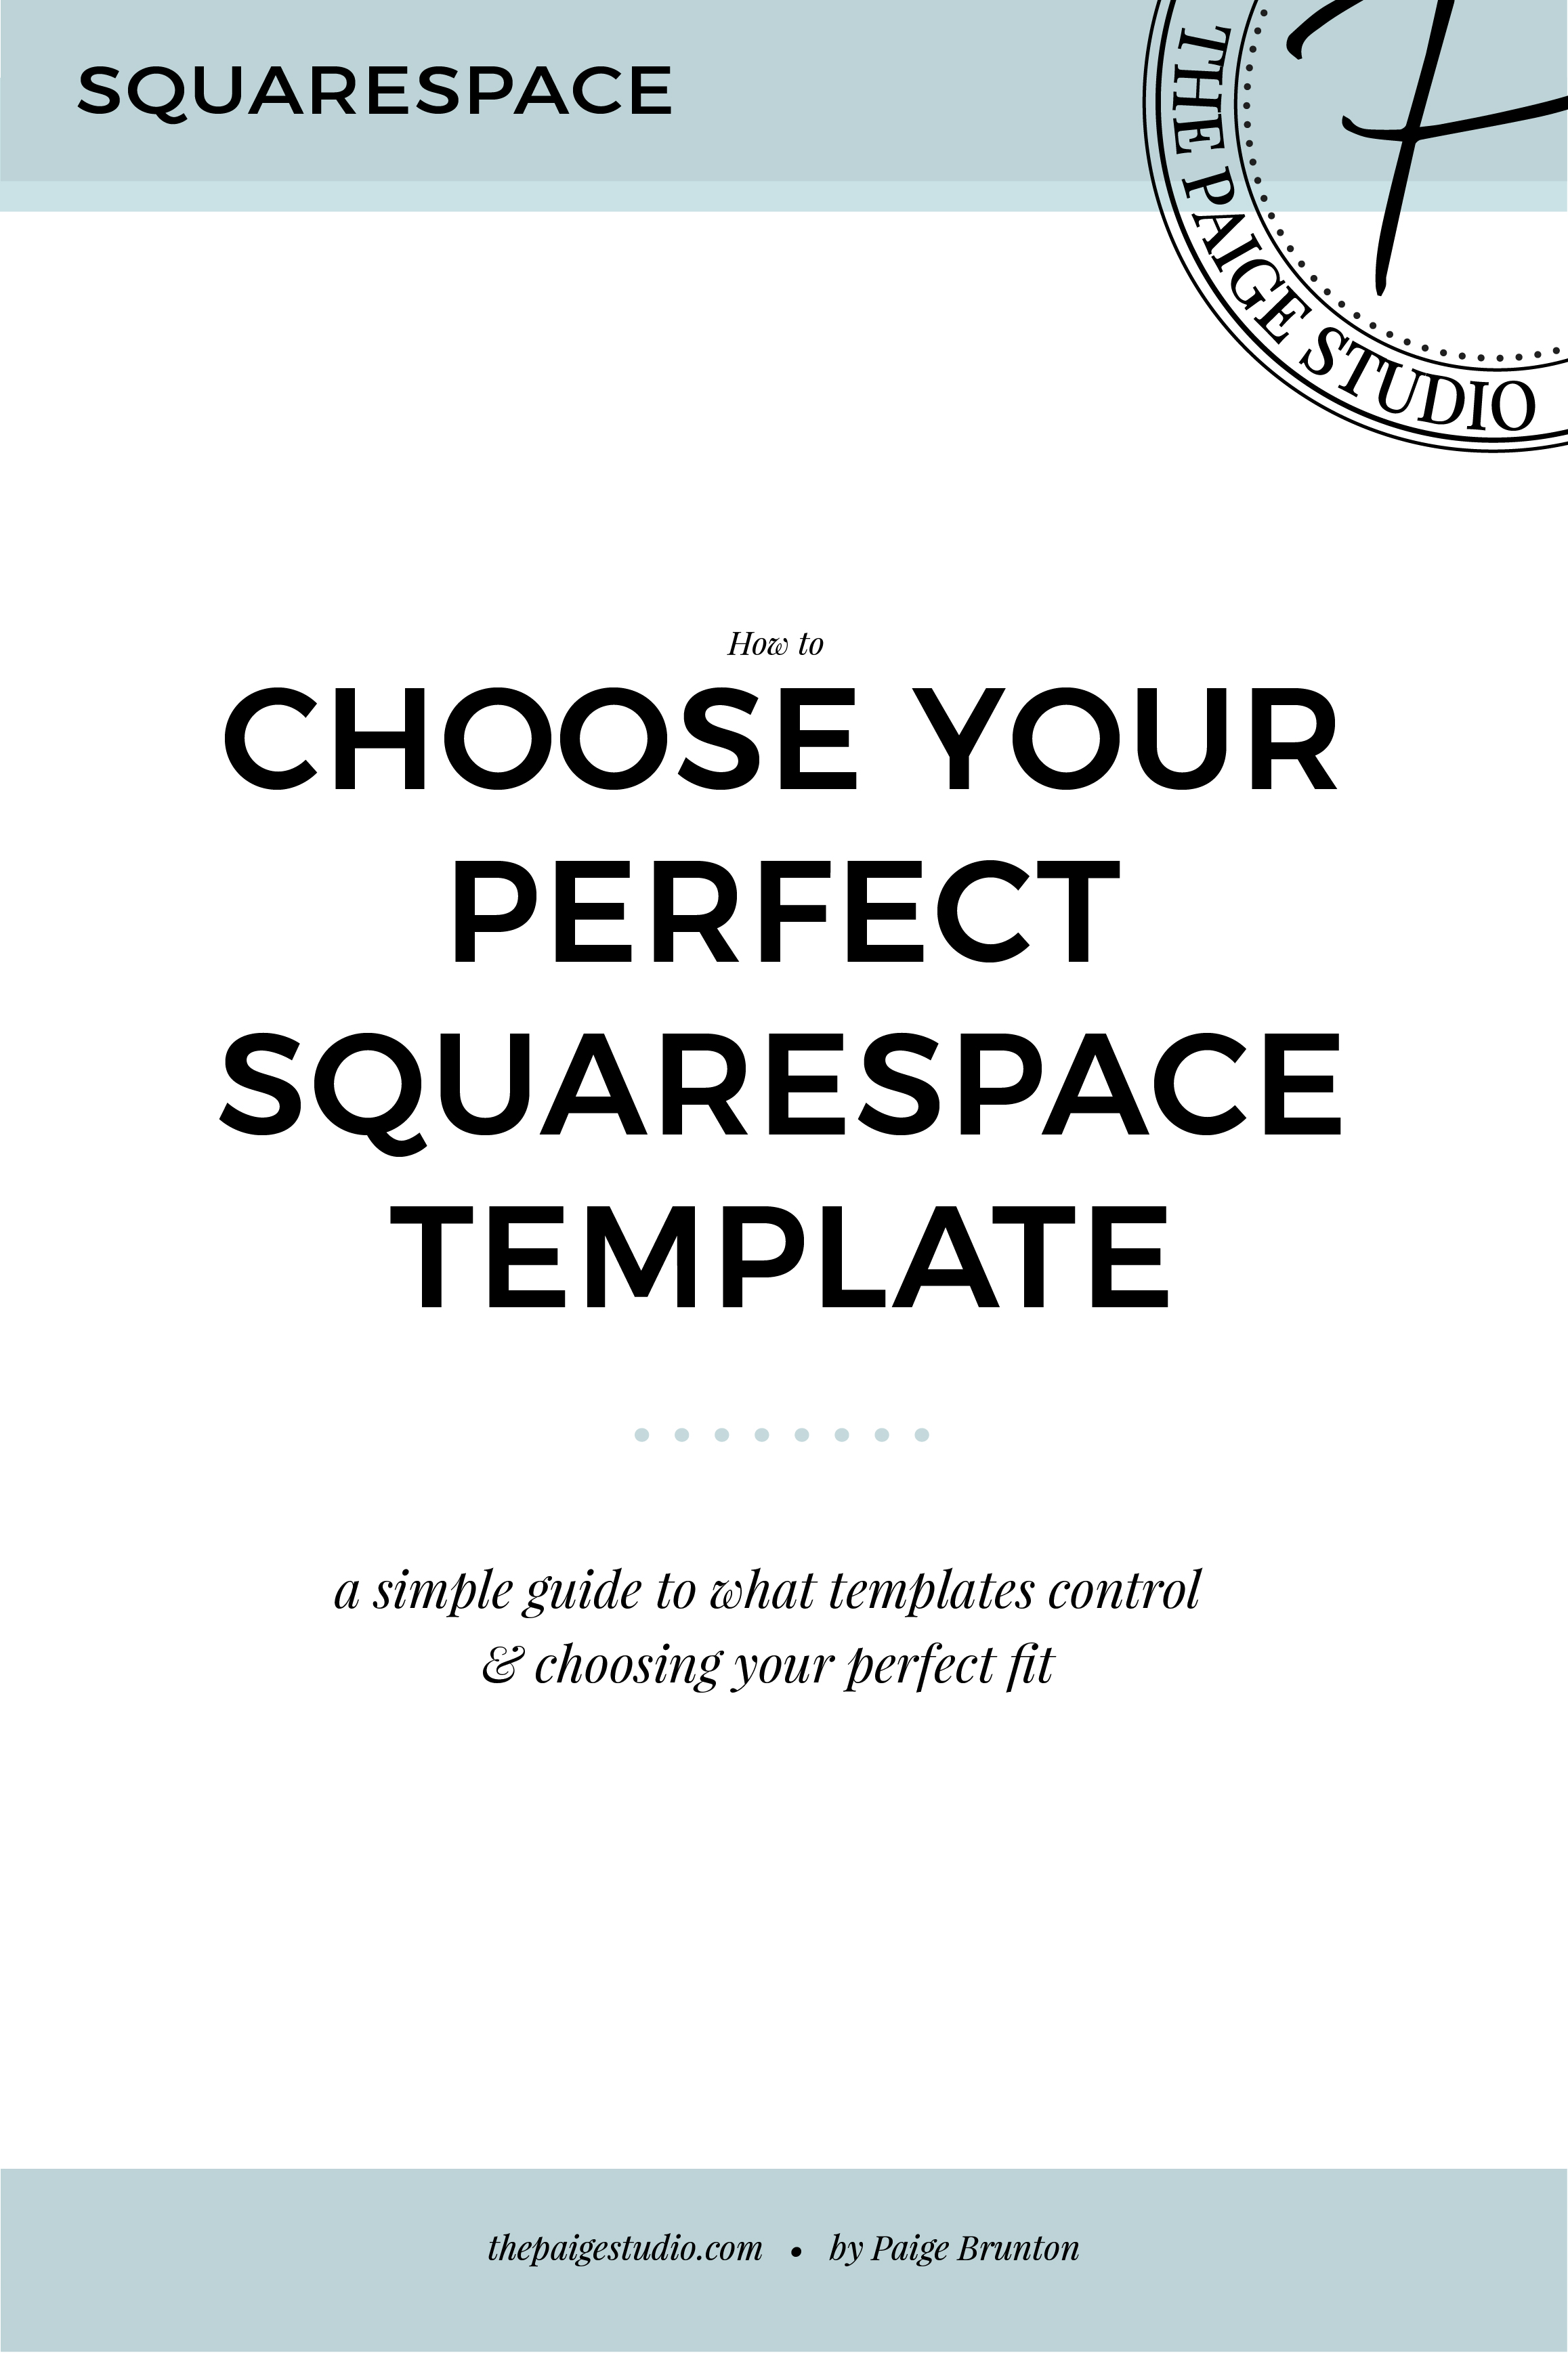 how to choose your perfect Squarespace template - a quick & simple guide